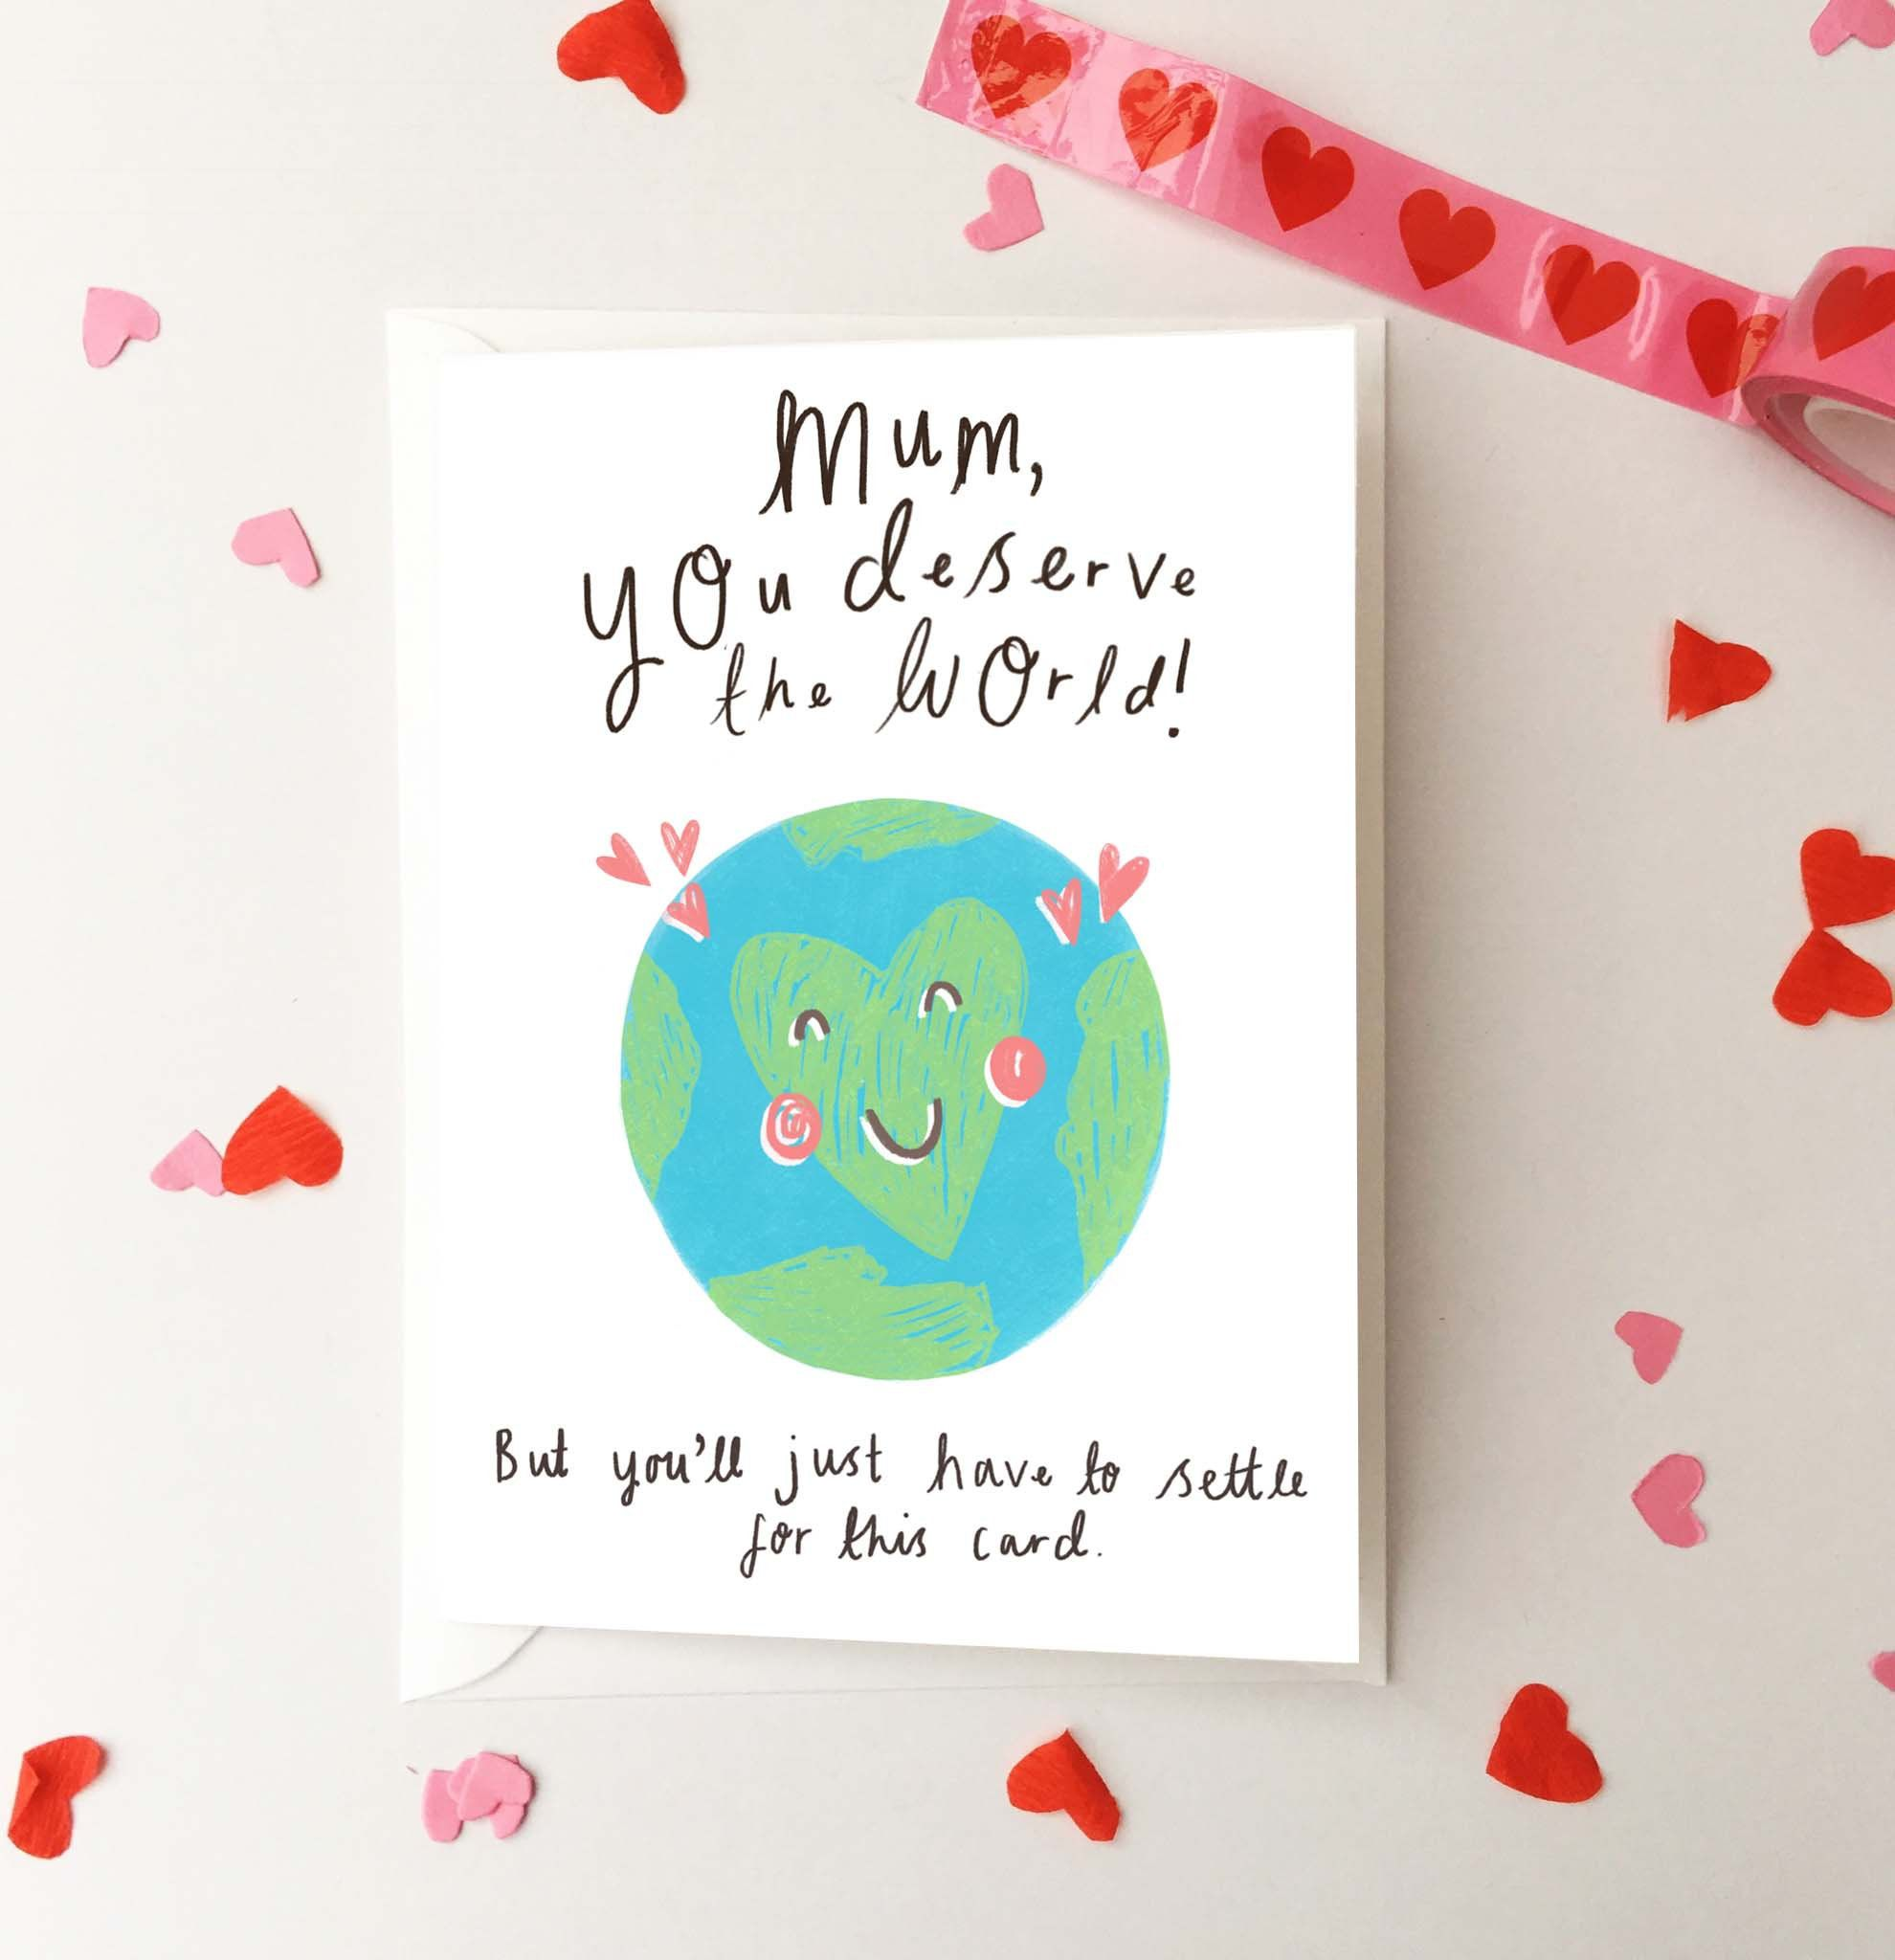 Mum You Deserve The World Greeting Card Cute Illustrated Card Etsy Birthday Cards For Mum Birthday Cards Birthday Presents For Mom